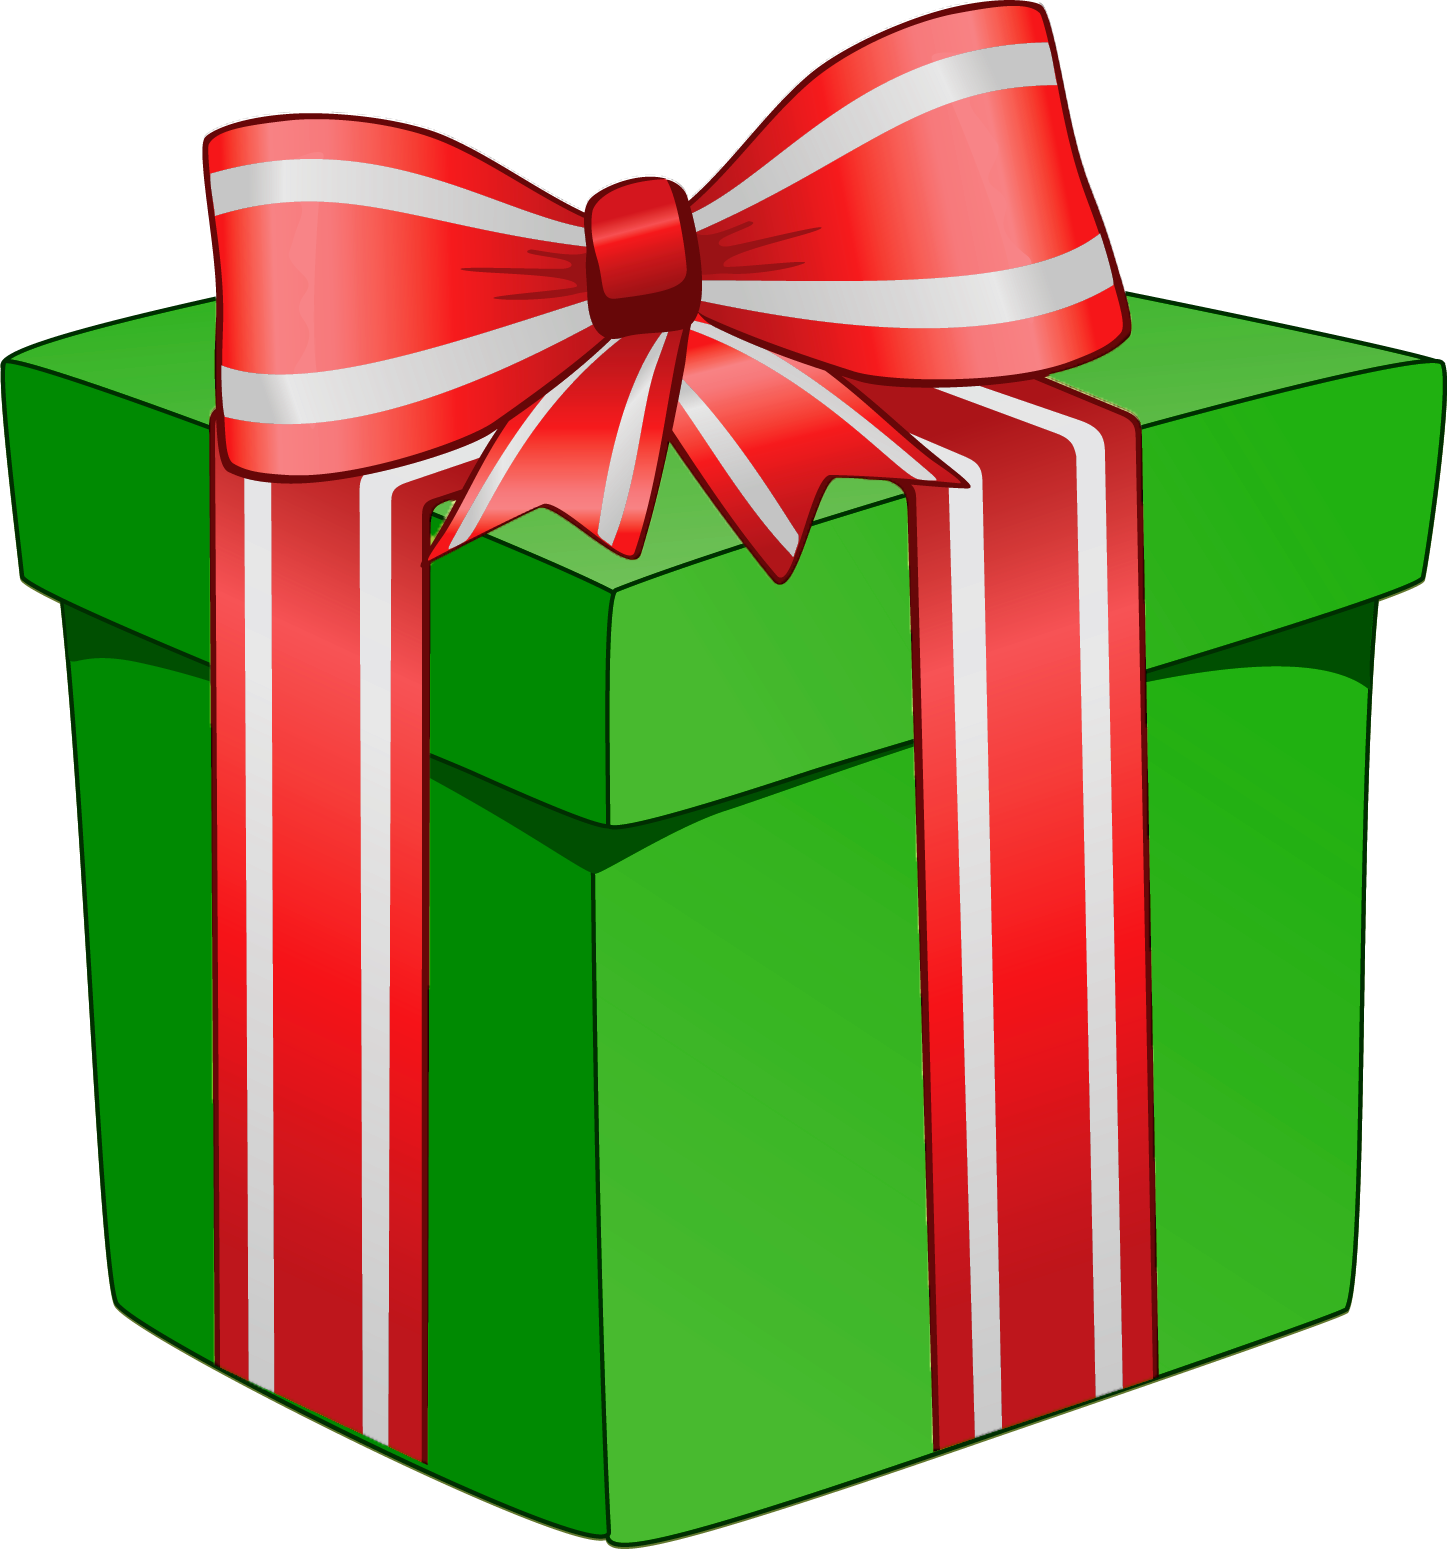 Xmas Stuff For Christmas Gift Boxes Clip Art